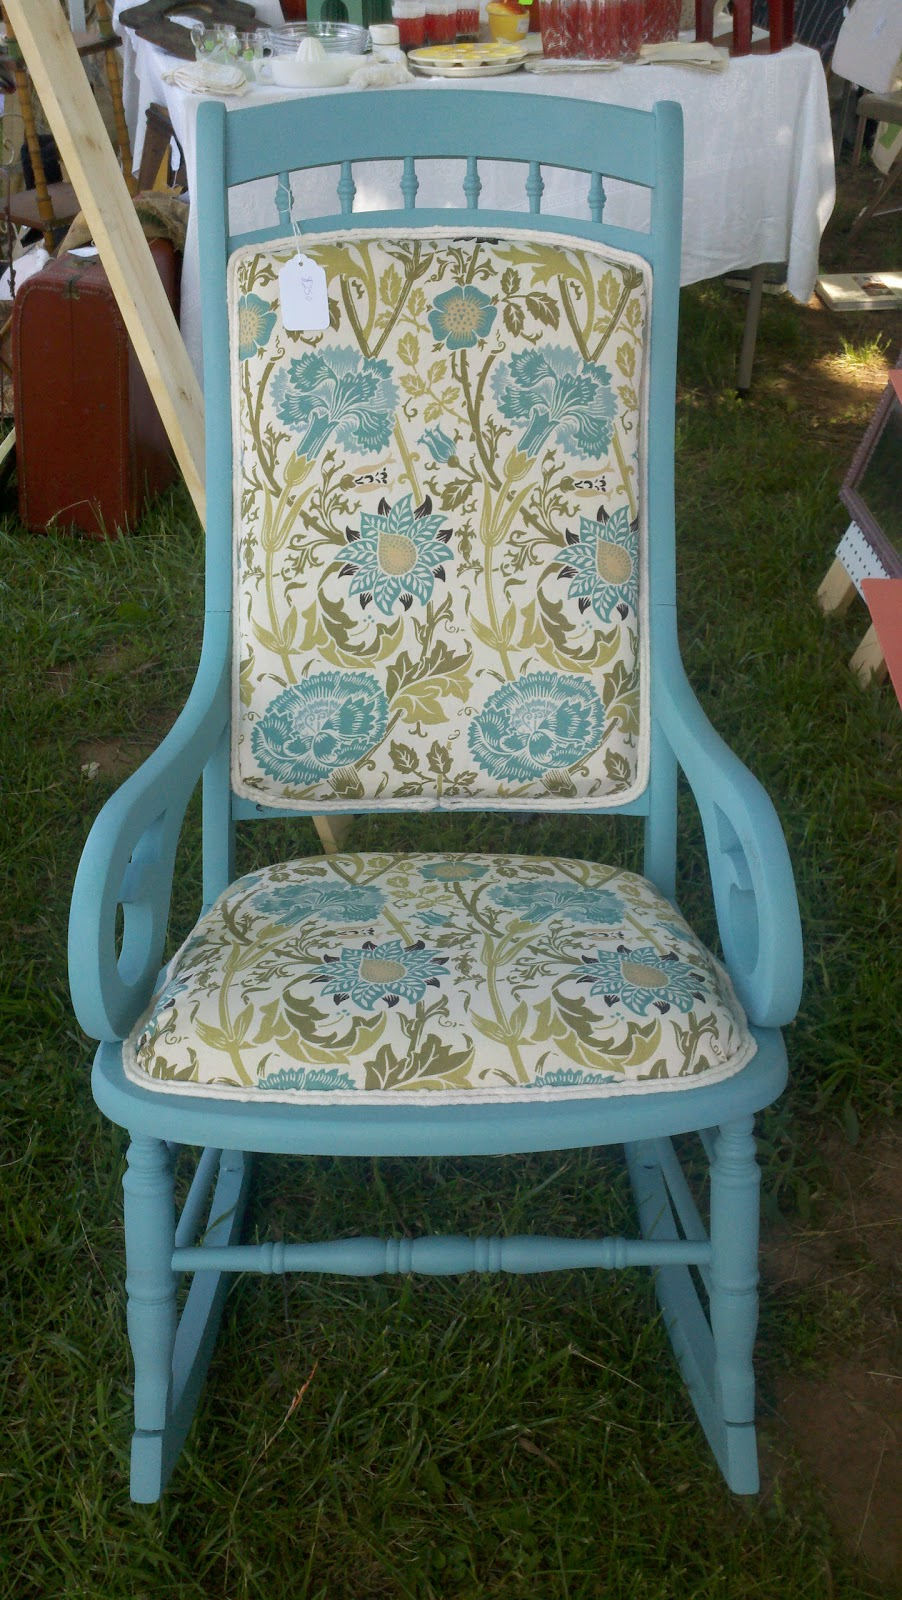 How to make wicker furniture cushion covers picture on how to make wicker furniture cushion coversid f_220007 with